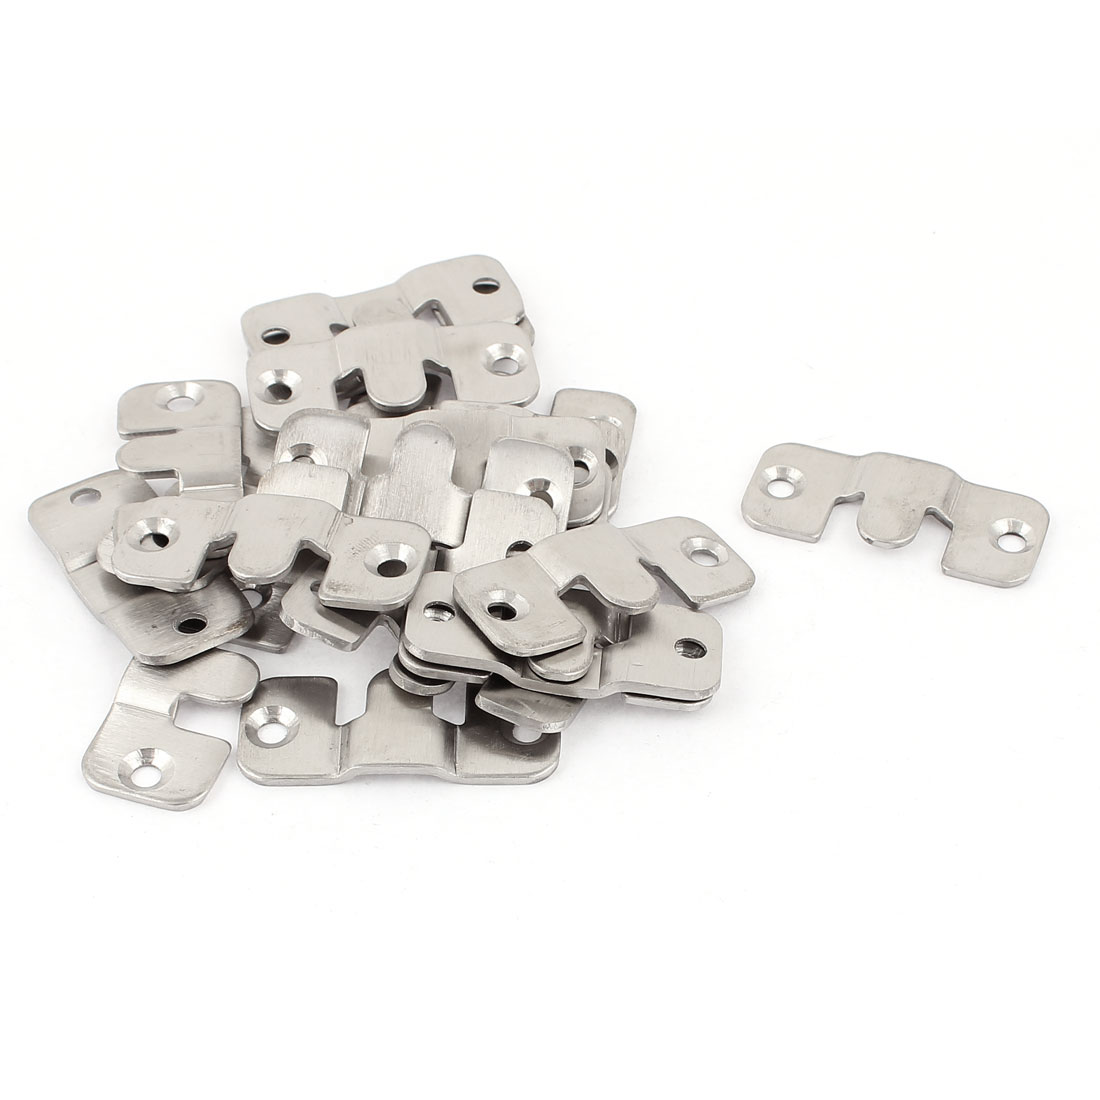 Stainless Steel Universal Sectional Sofa Interlocking Furniture Connector 20pcs